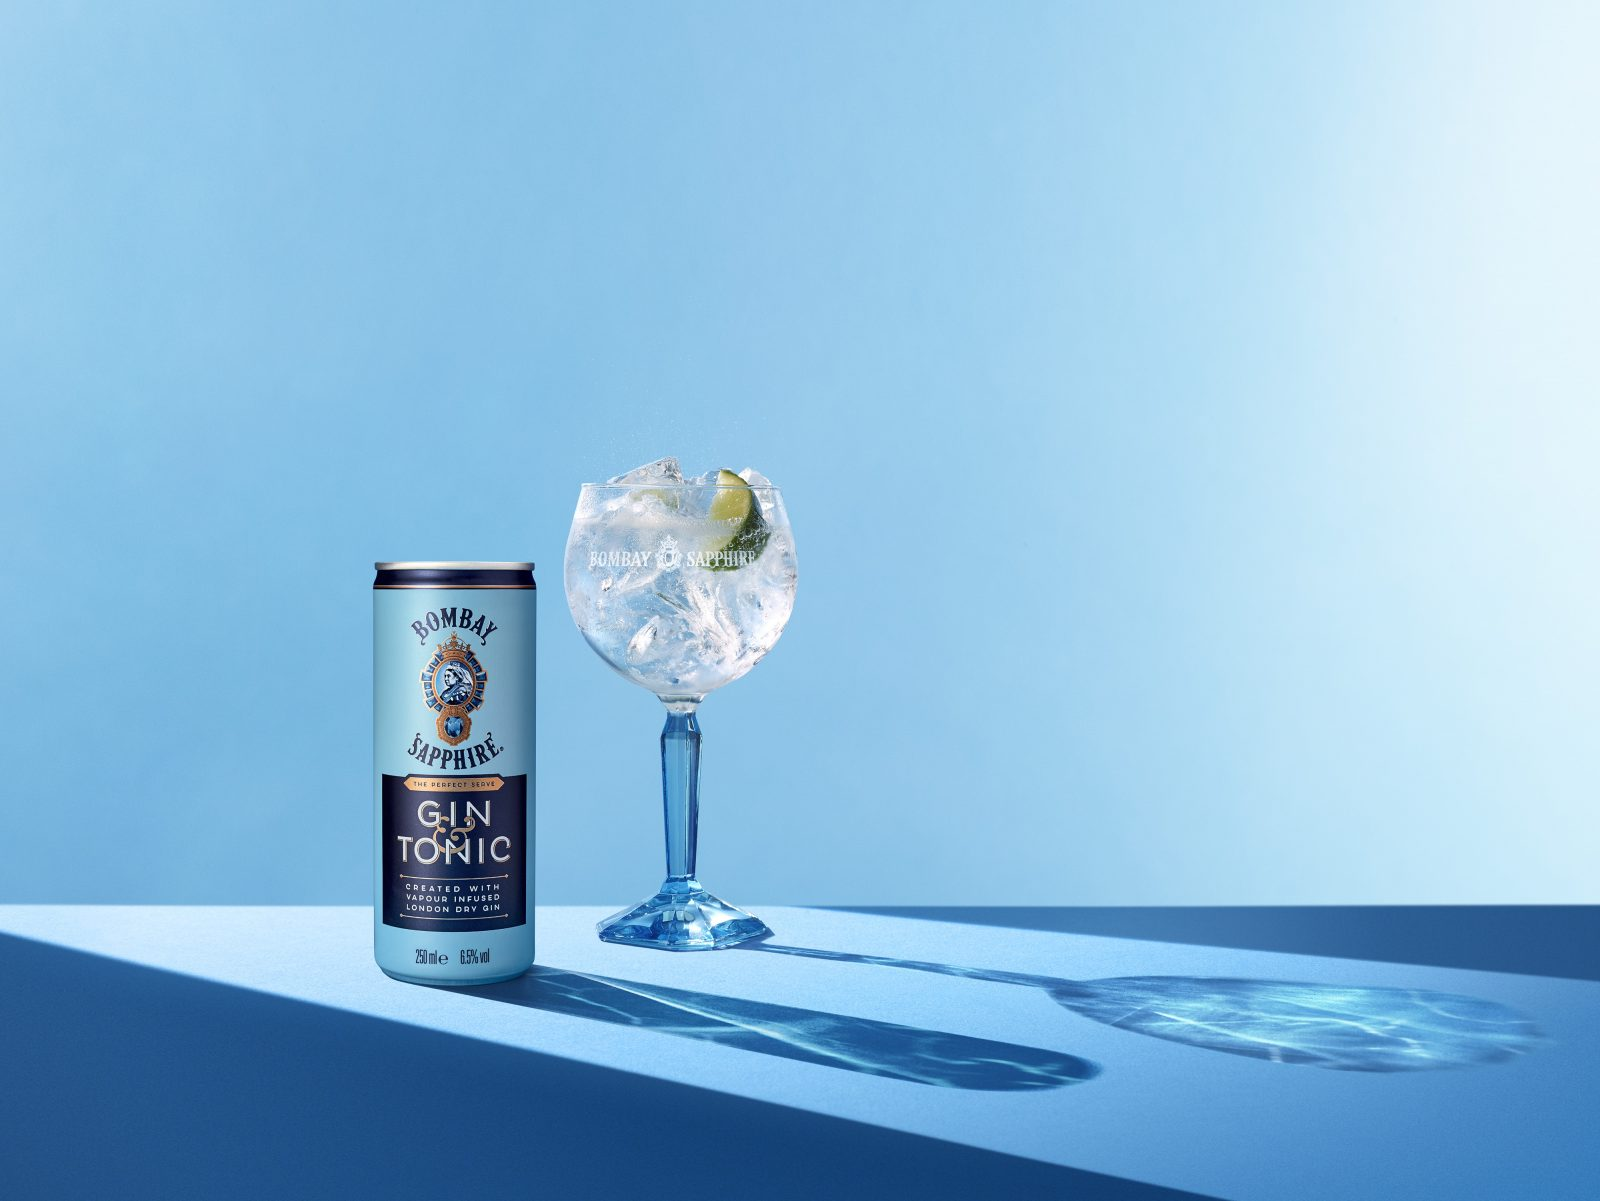 Bombay Sapphire gin and tonic can